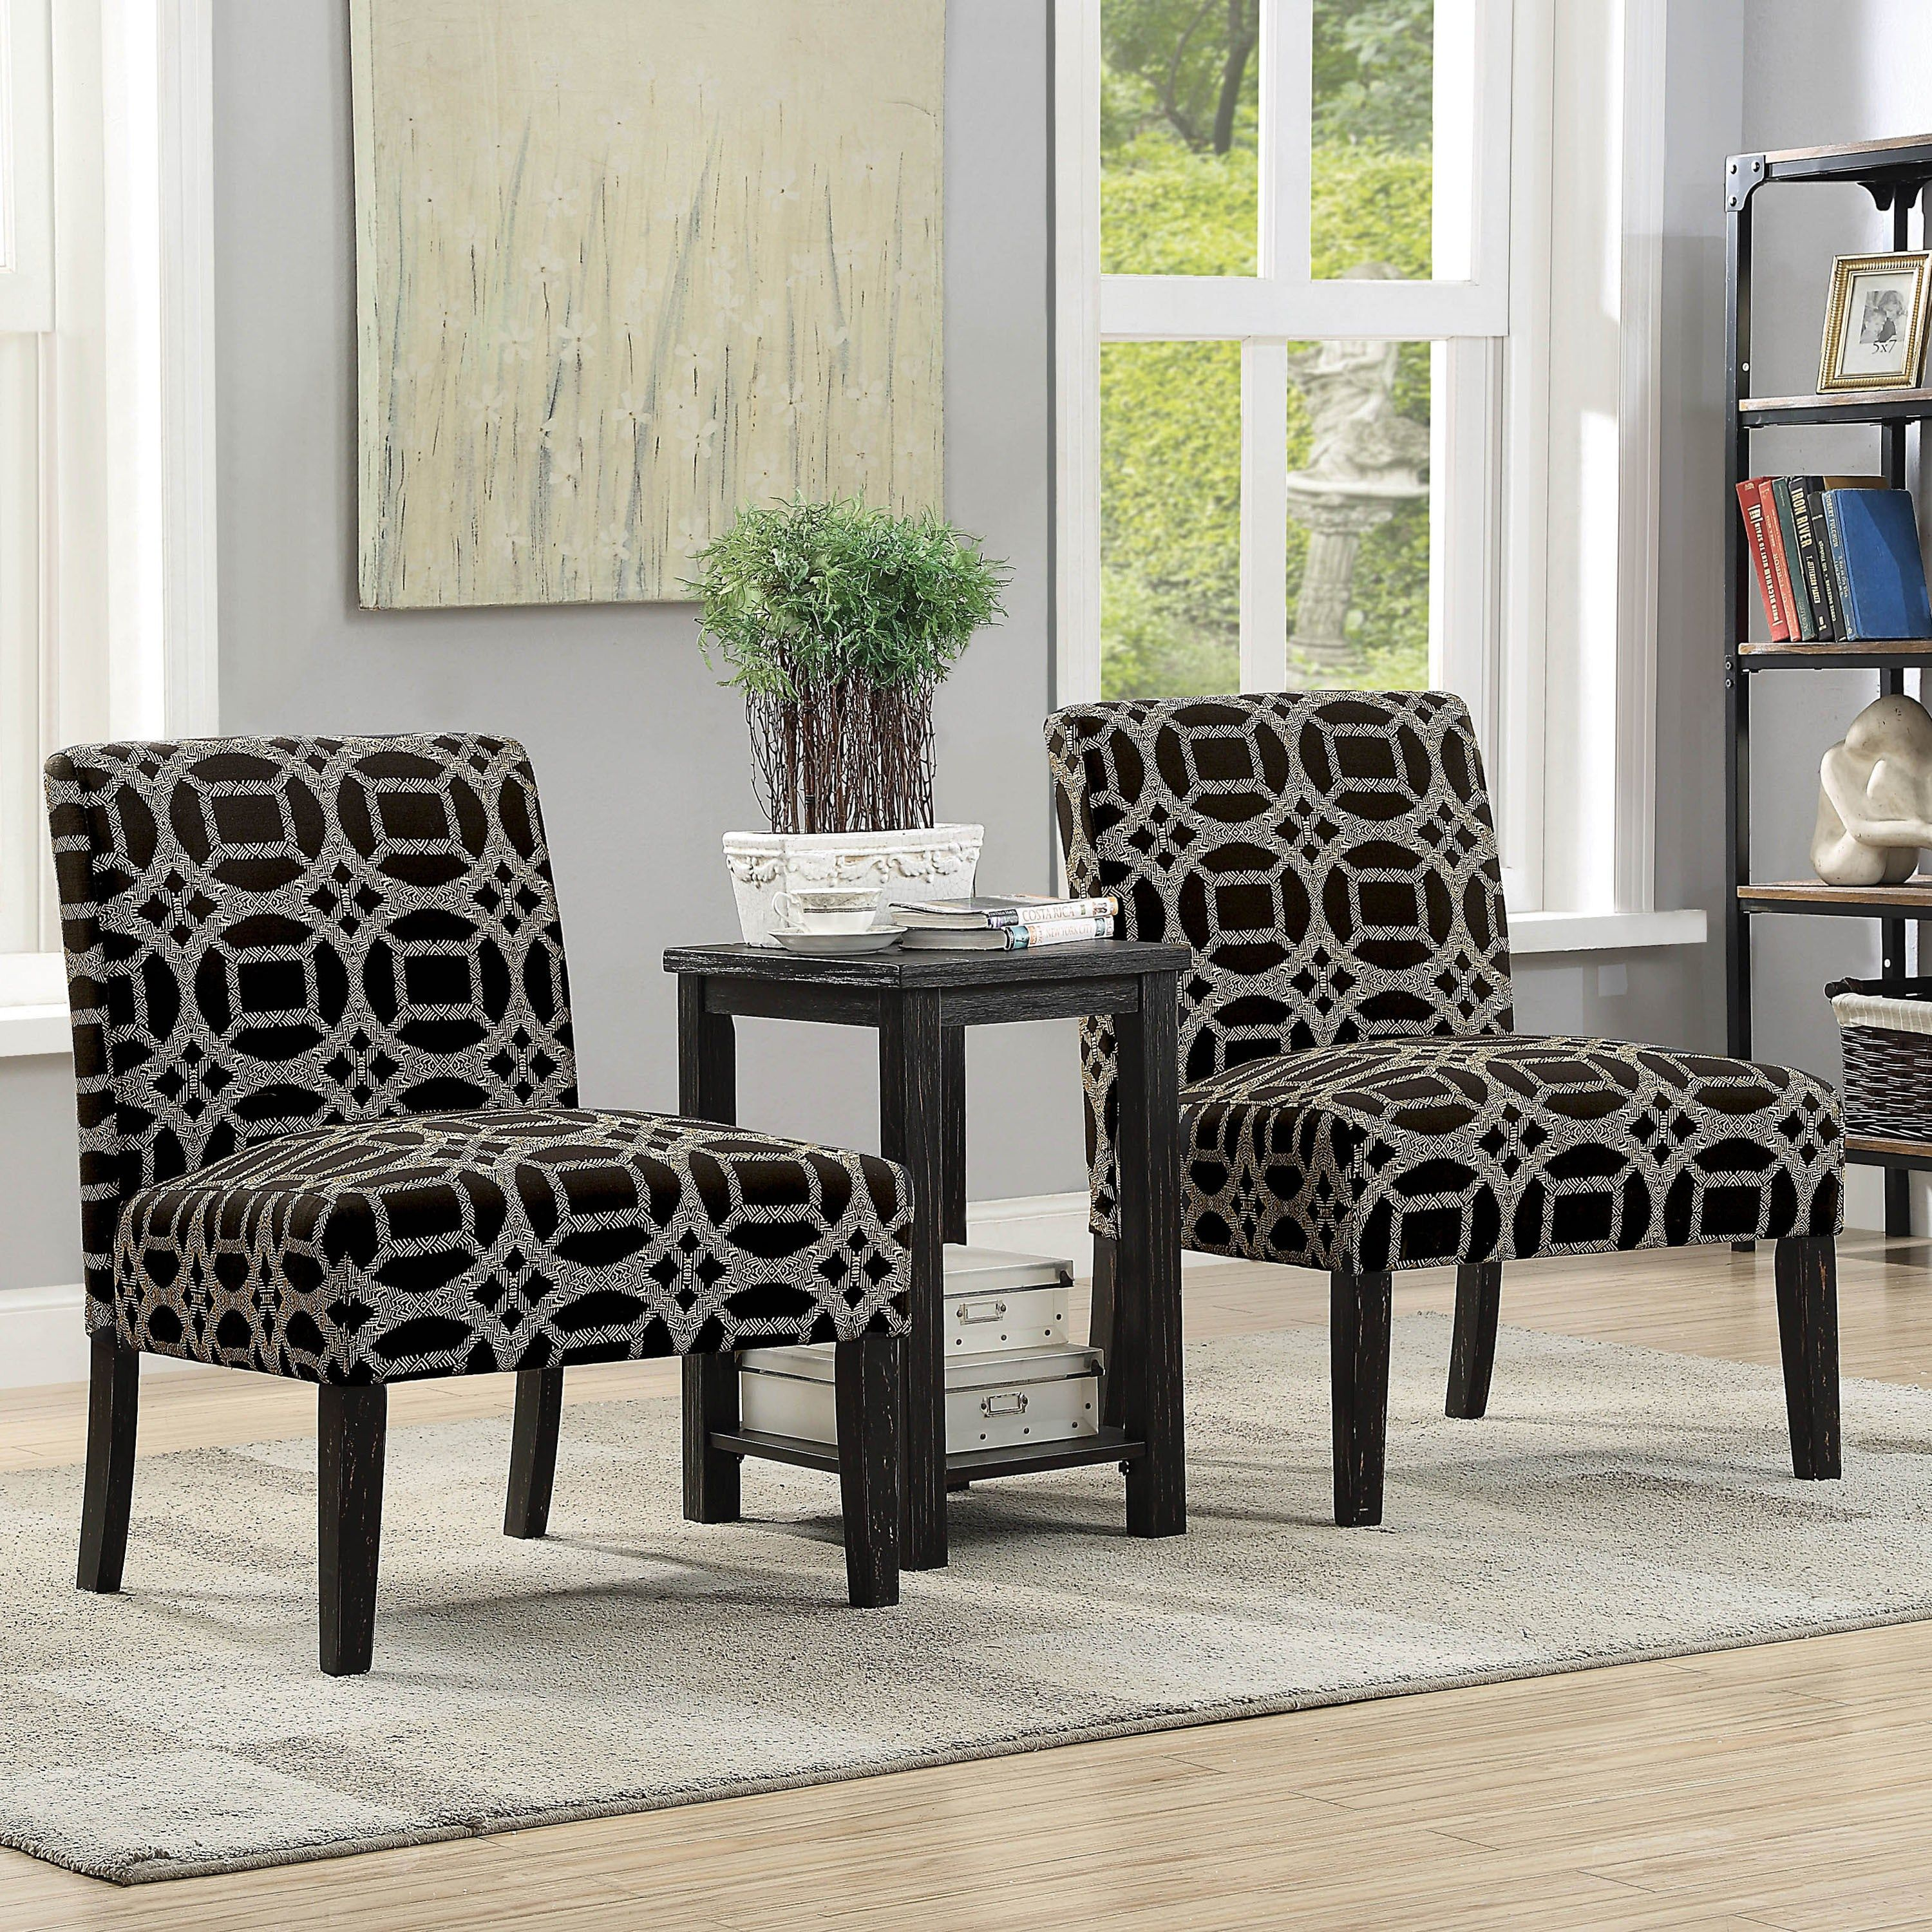 Braden Transitional Black 3 Piece Accent Chairs And Table Set By